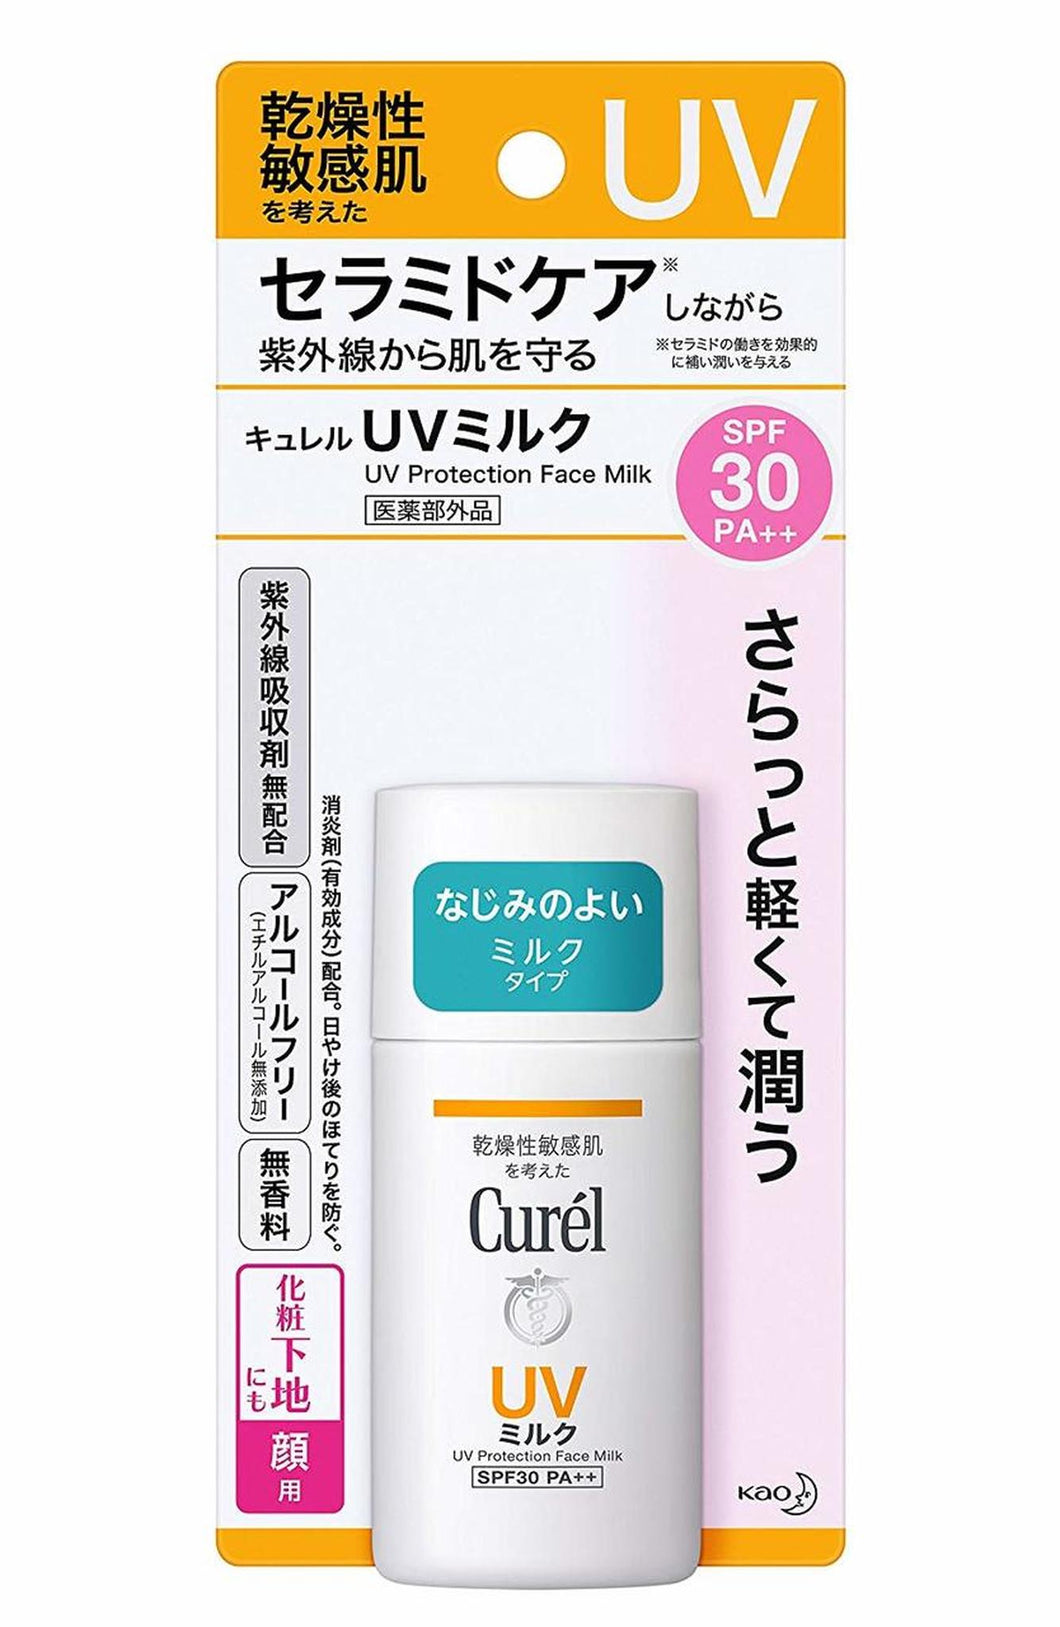 Curel UV Protection Face Milk SPF30 PA++ 30ml